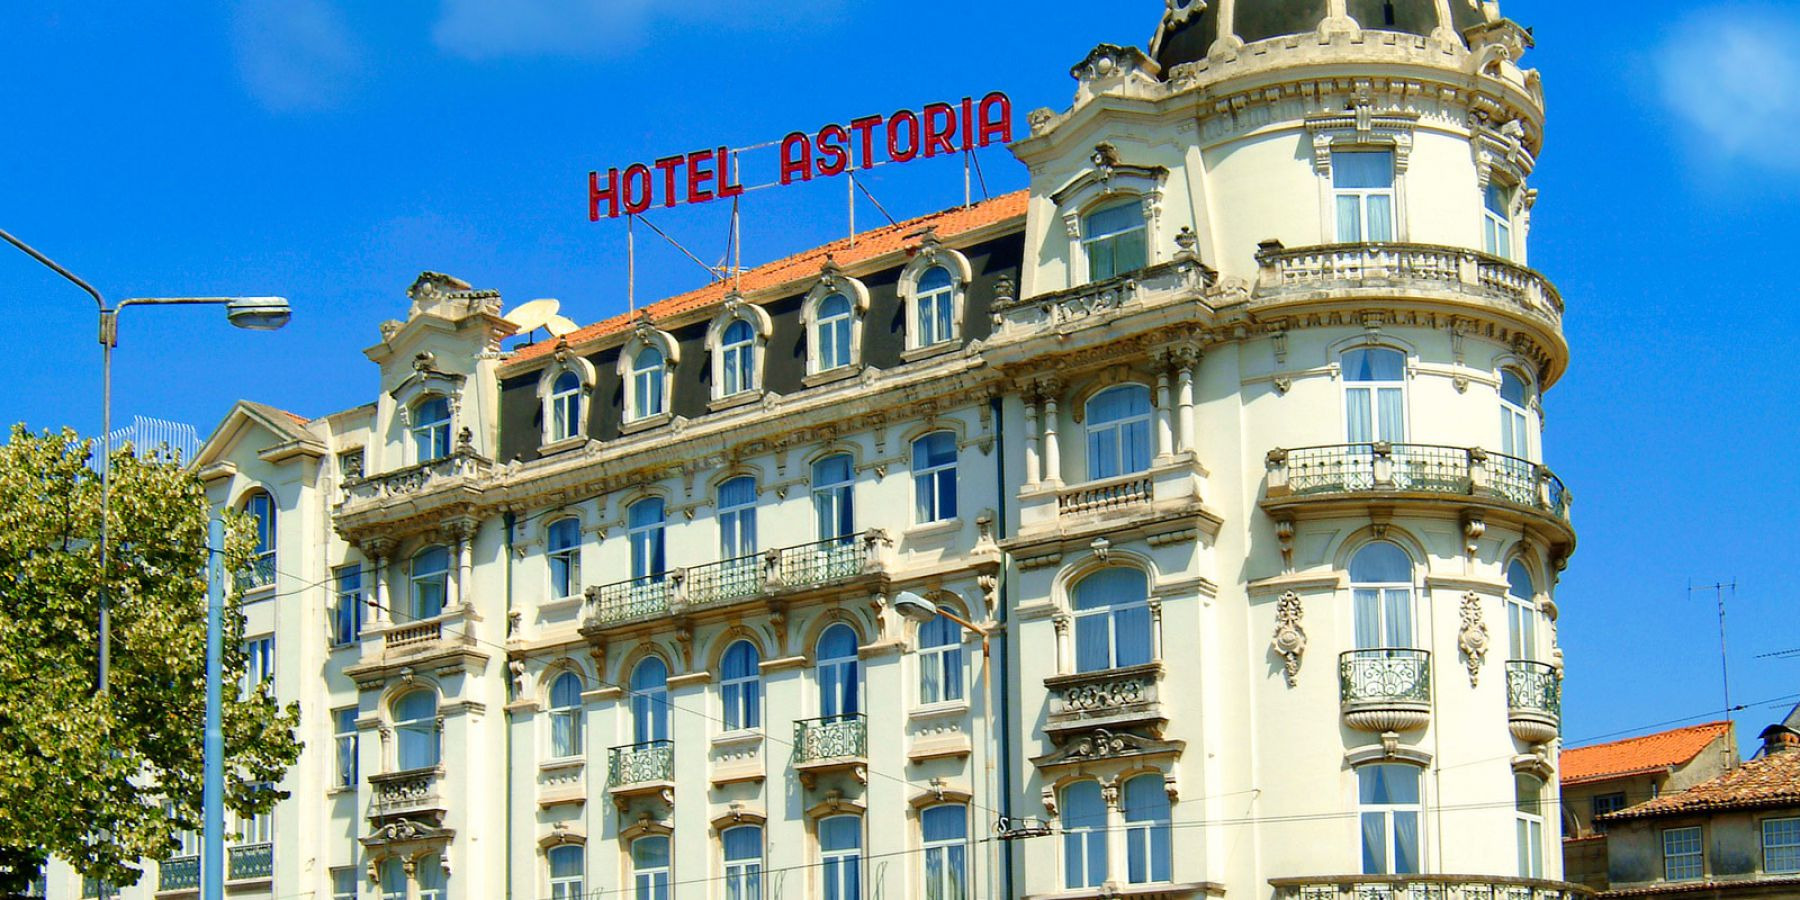 Hotel ast ria alexandre almeida hotels for Sites hotel